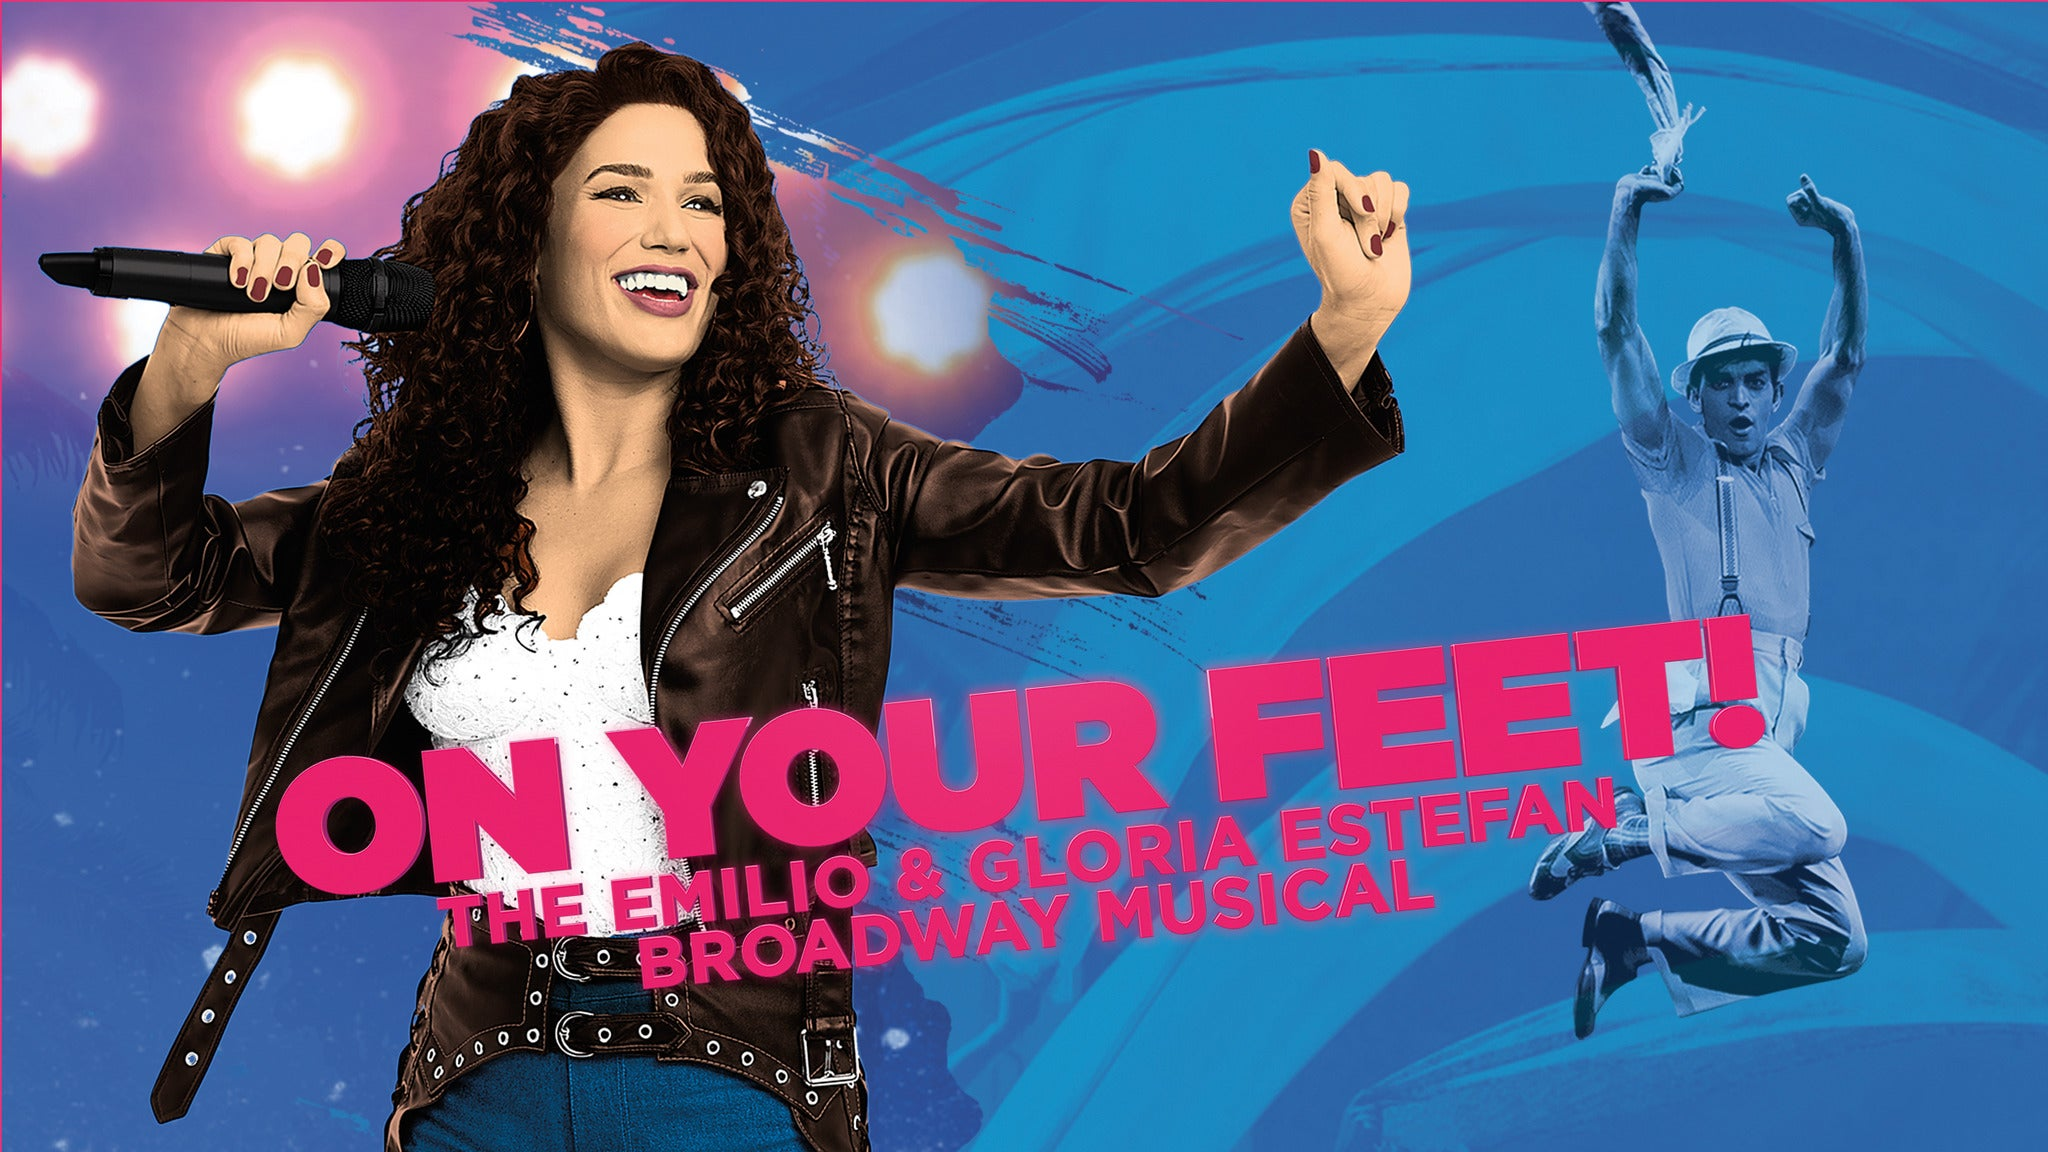 On Your Feet at Golden Gate Theatre - San Francisco, CA 94102